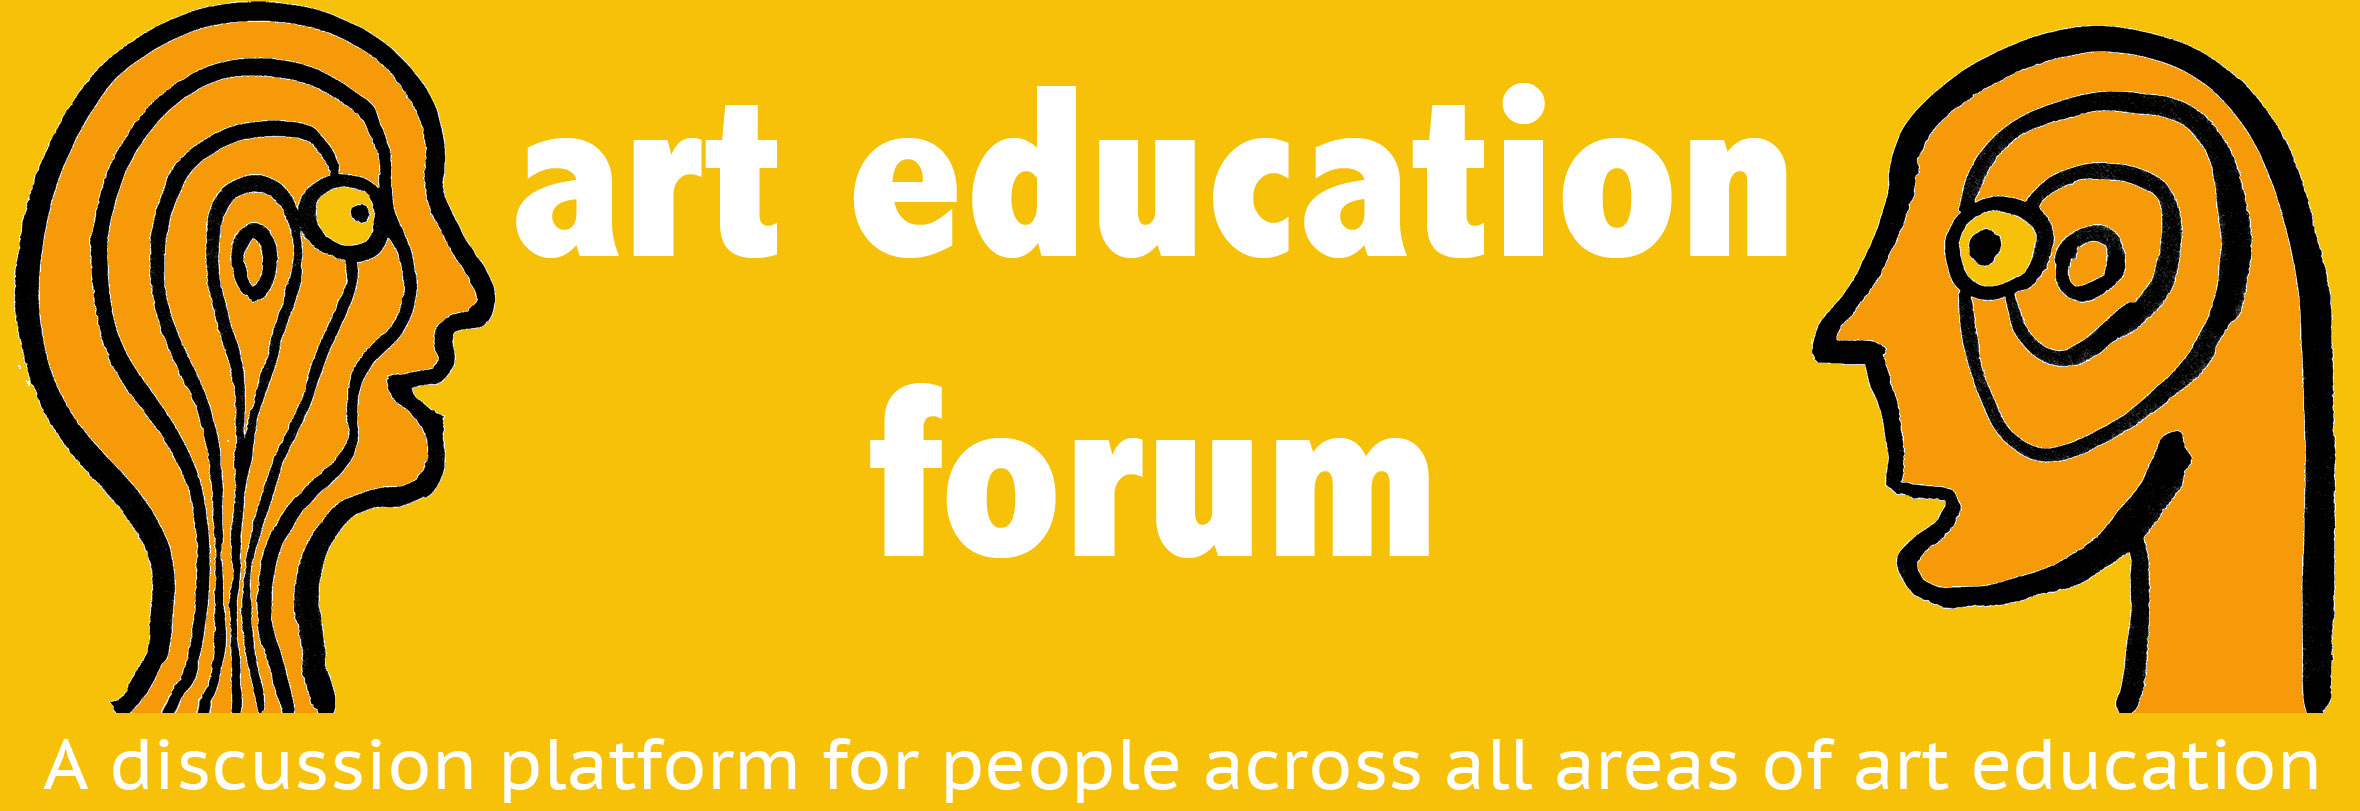 art education forum